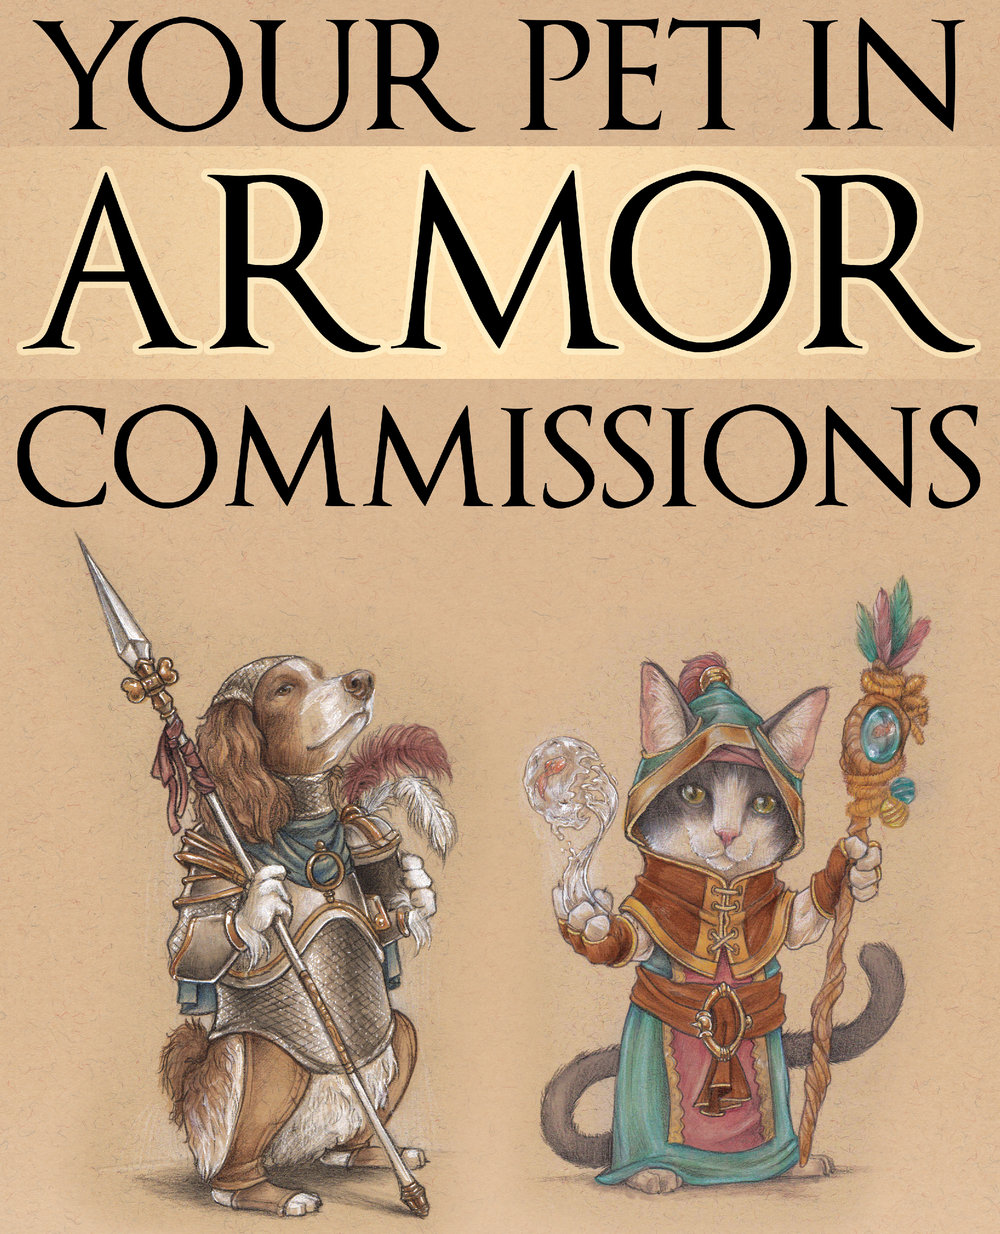 I have this sign at my table usually.I do commissions of people's pets in armor that end up being quite popular